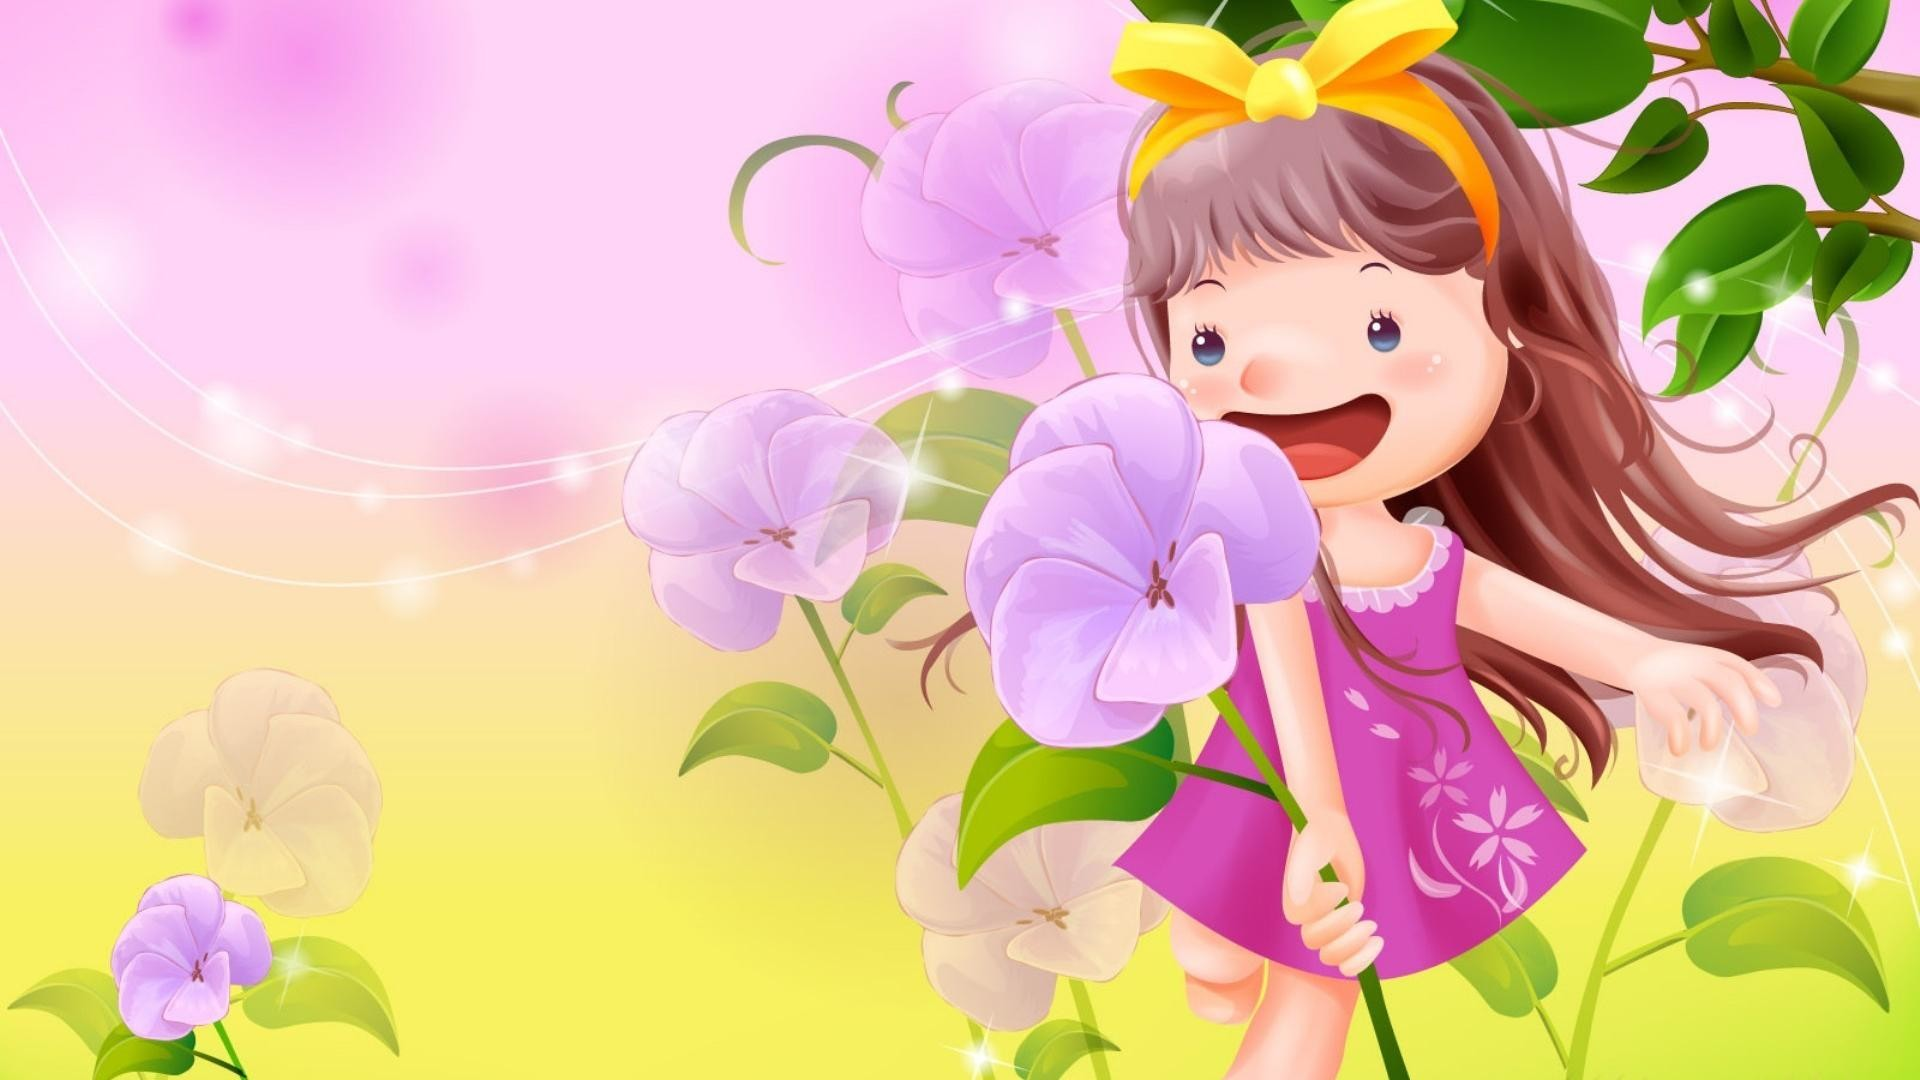 Funny Wallpapers For Laptop 60 Images: Funny Cartoon Wallpaper (60+ Images